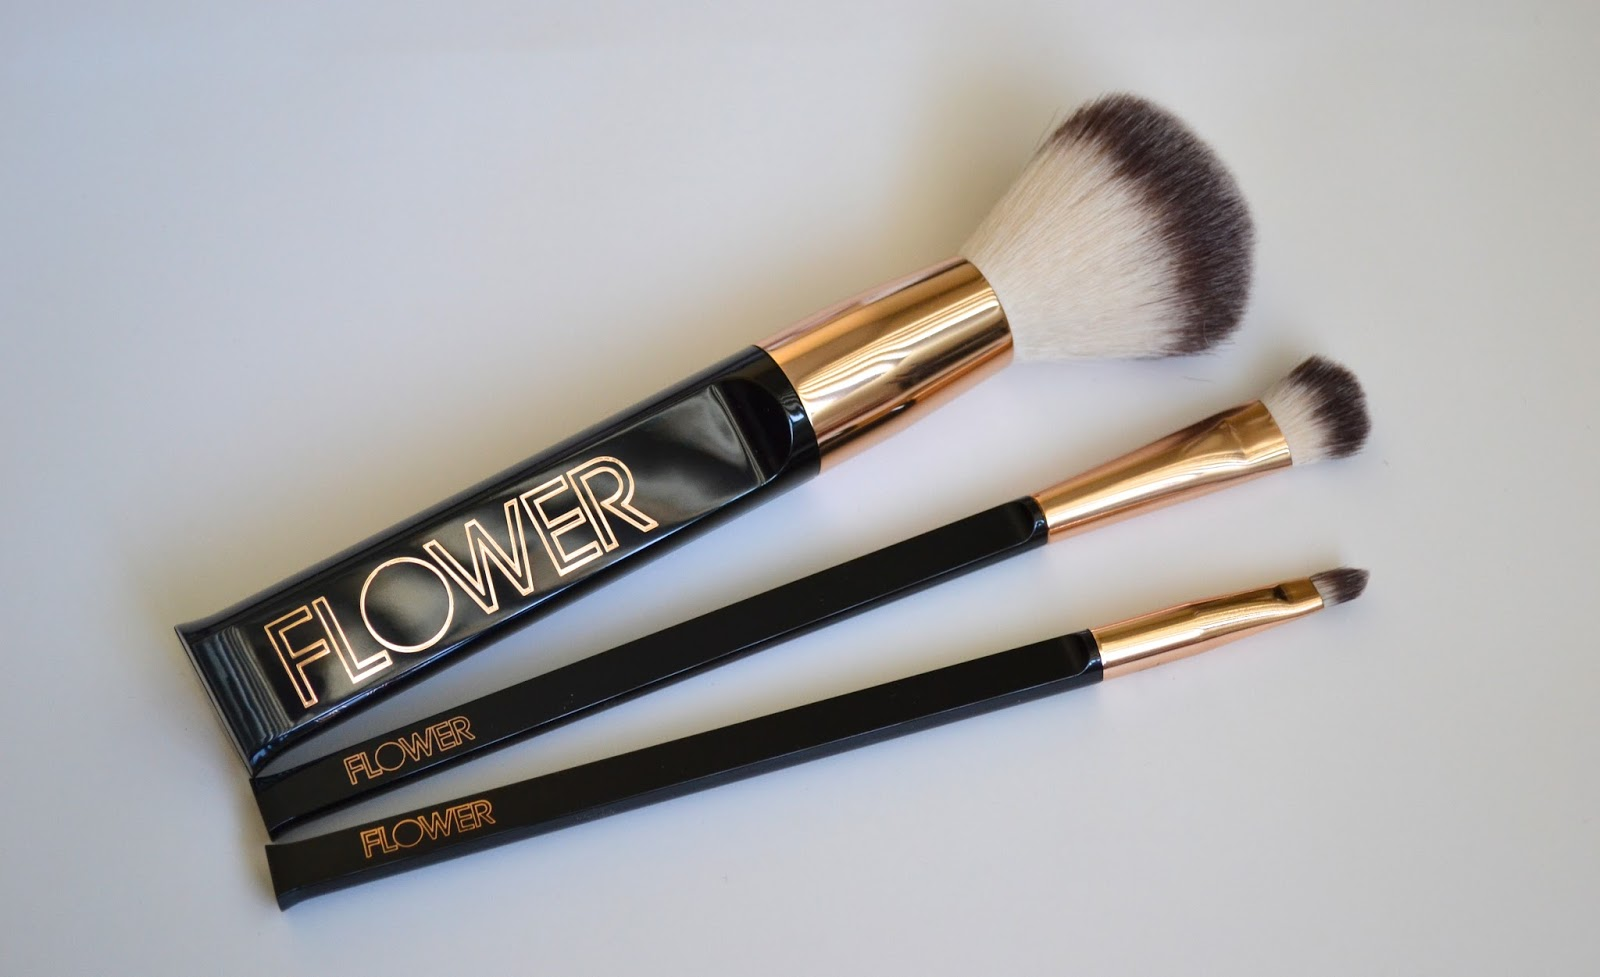 Aquaheart flower beauty ultimate brushes powder eyeshadow lip today i have a review of some flower beauty makeup brushes that i recently bought at walmart i ended up getting these for a discounted price since they izmirmasajfo